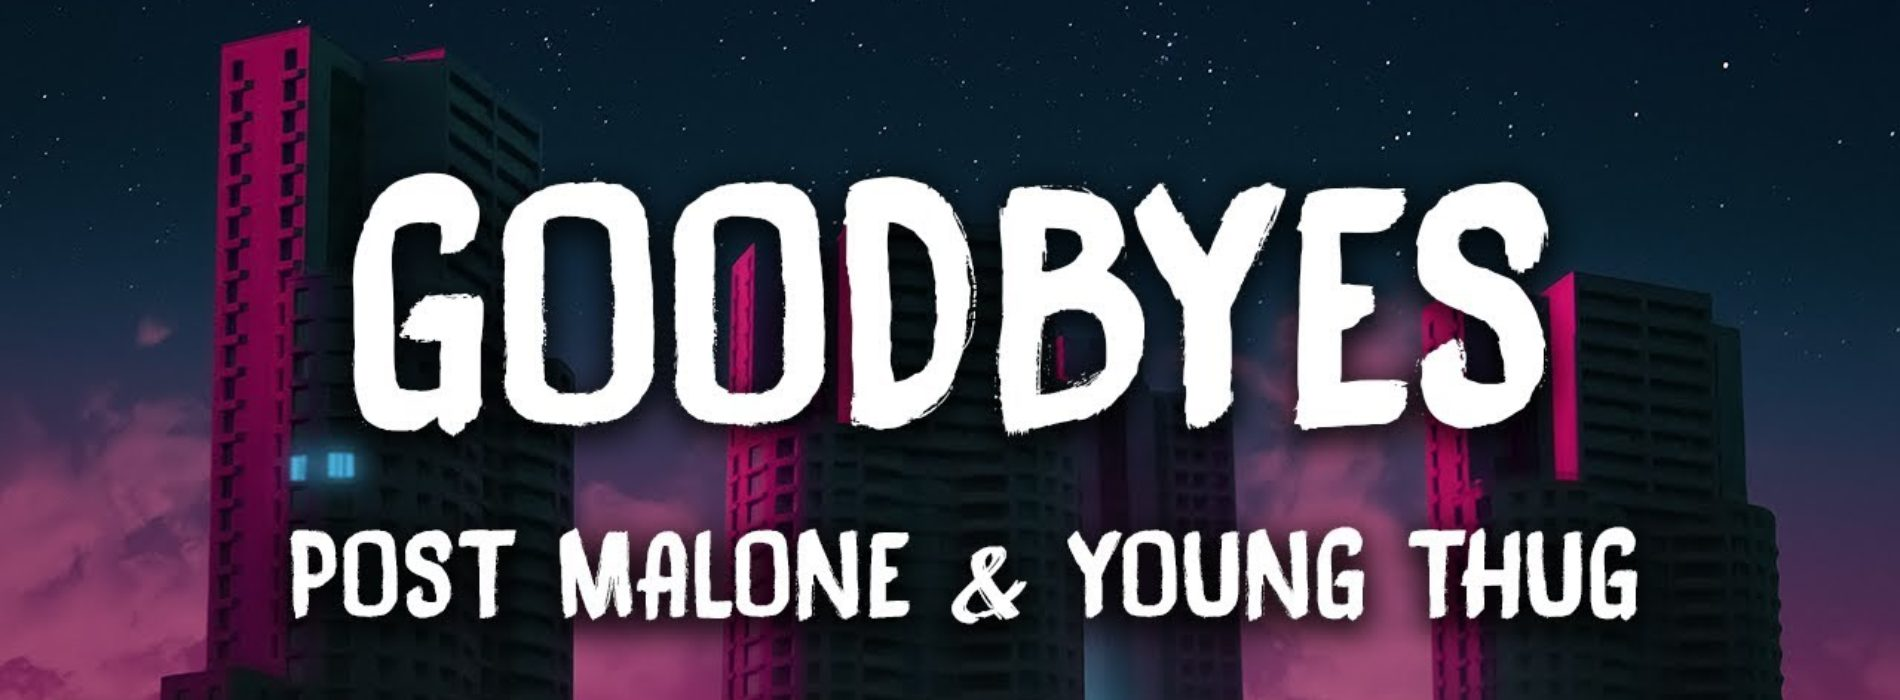 Post Malone – Goodbyes ft. Young Thug / Snoop Dogg – I Wanna Thank Me (Official Video) – Juillet 2019